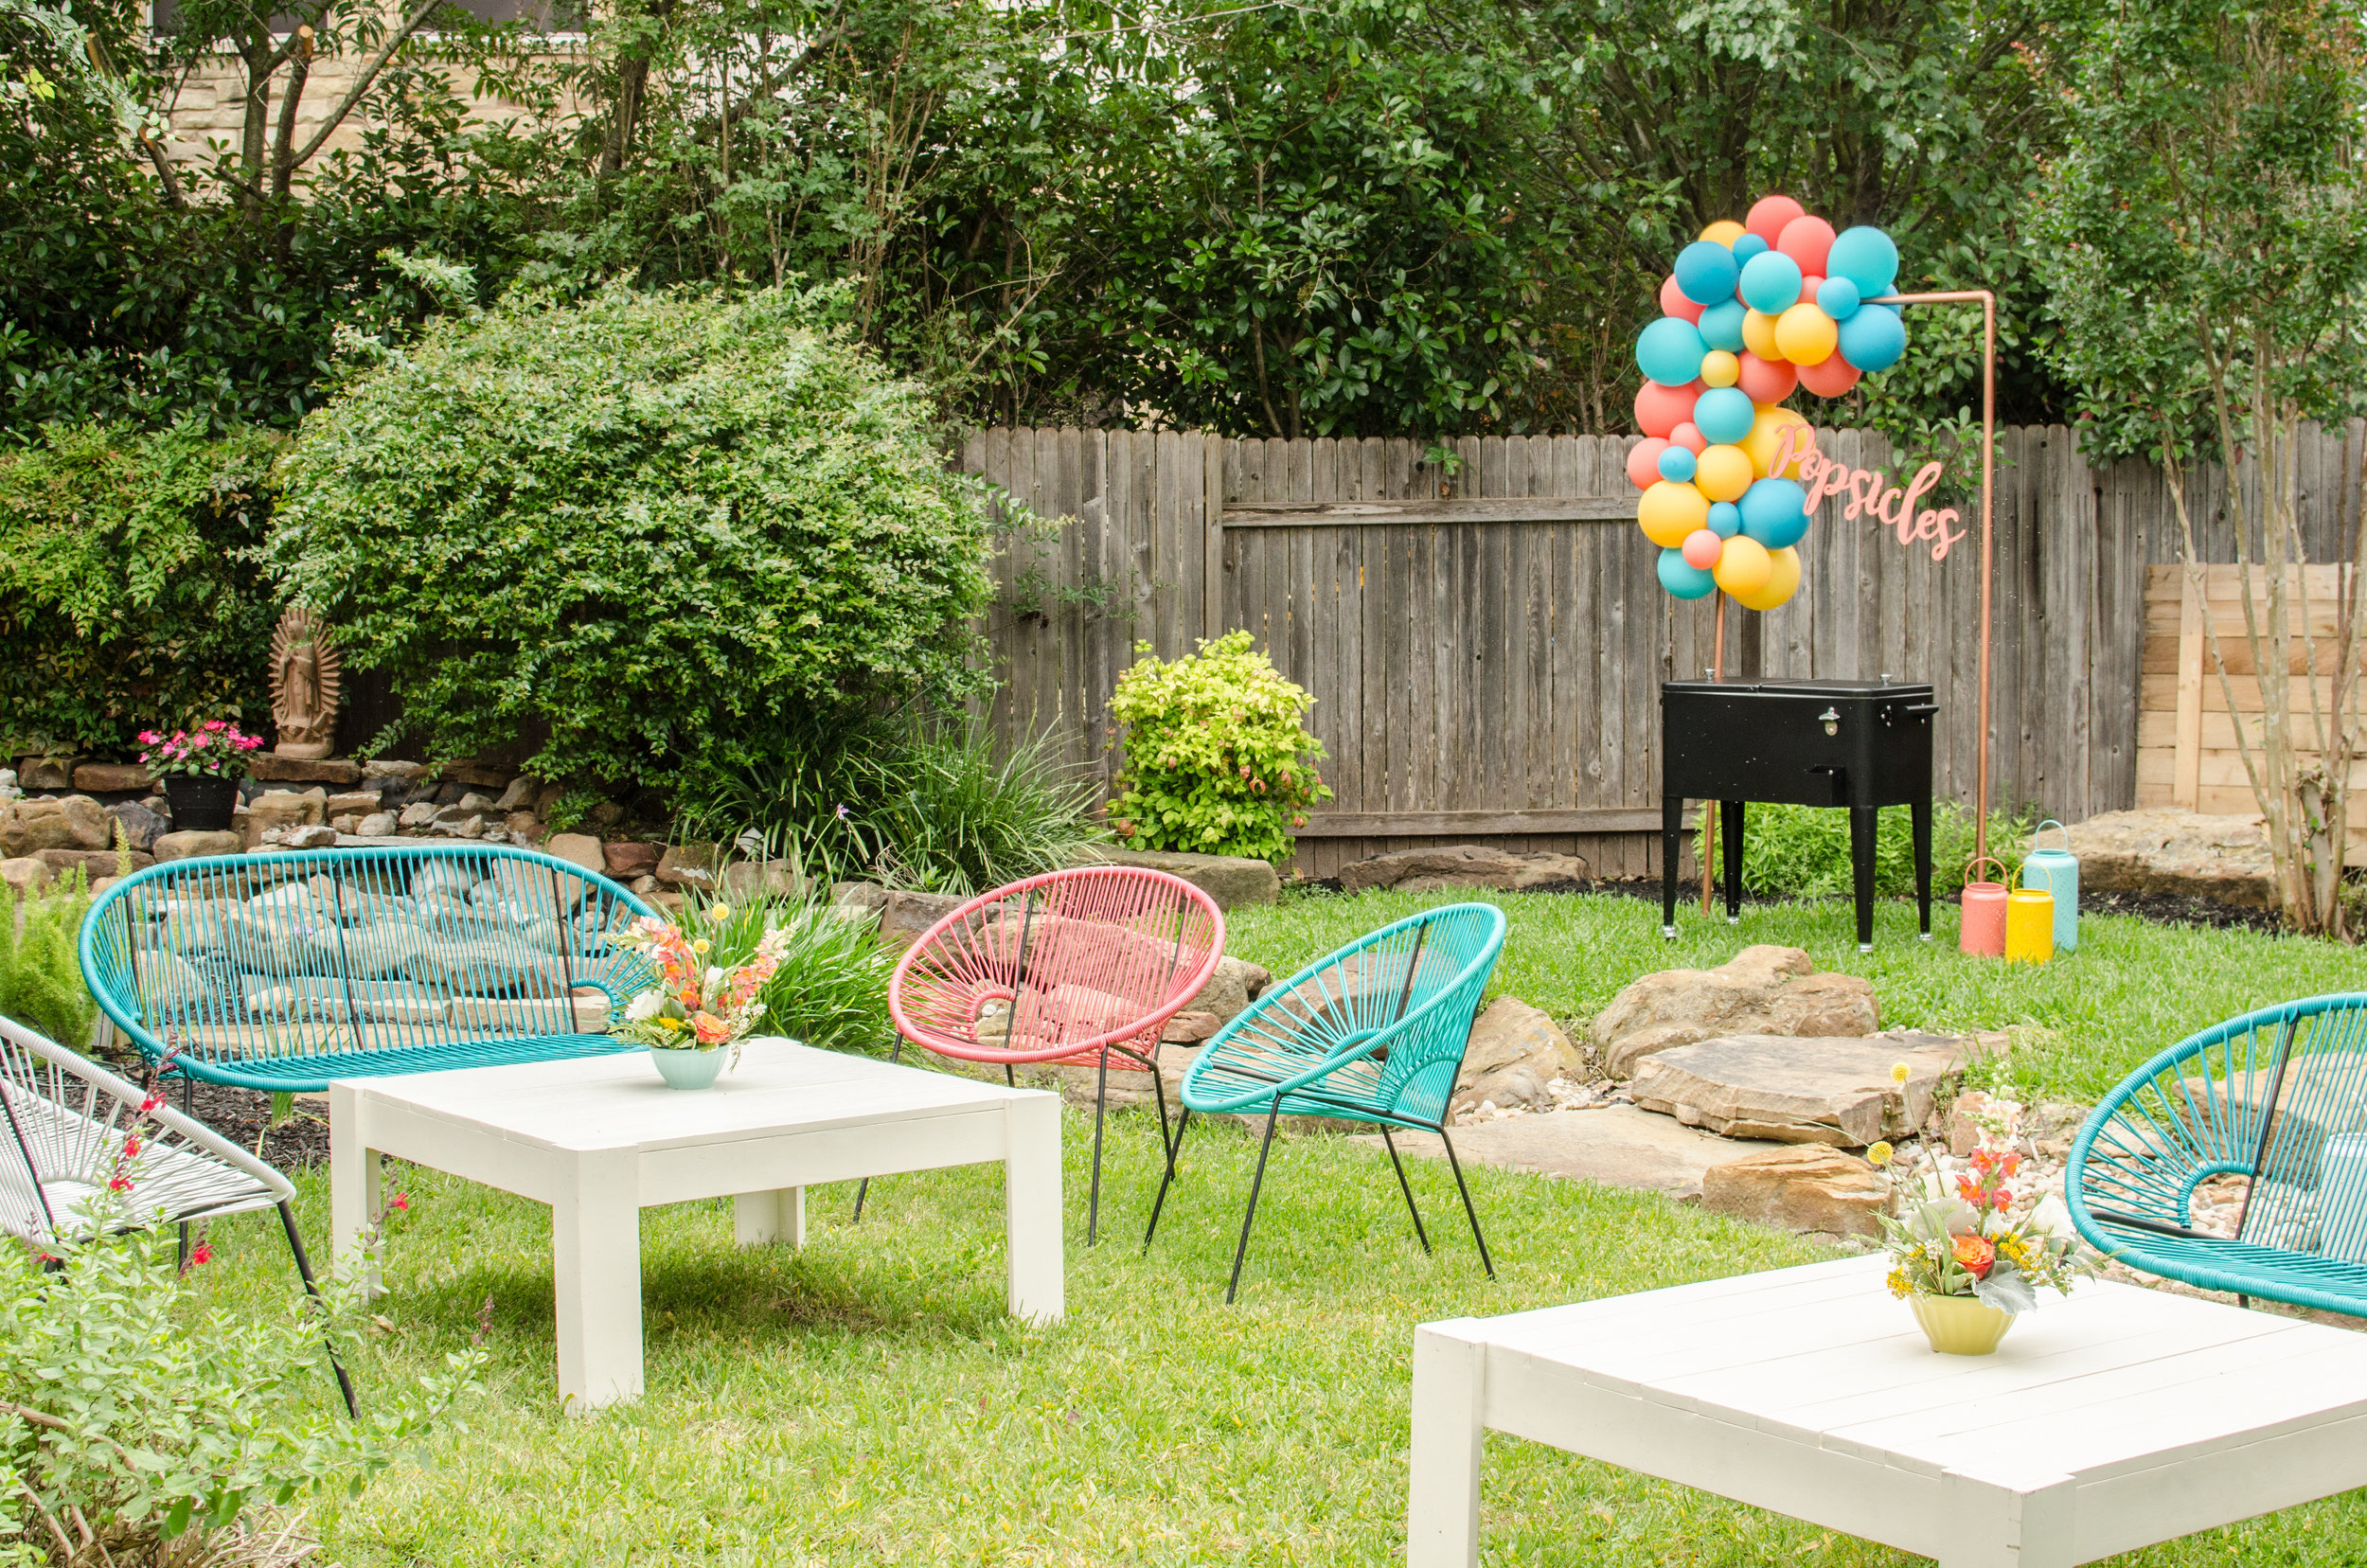 Outdoor Summer Party Lounge area with colorful chairs and loveseats is perfect for a teen graduation party. See more from this Grad Party on Mint Event Design www.minteventdesign.com